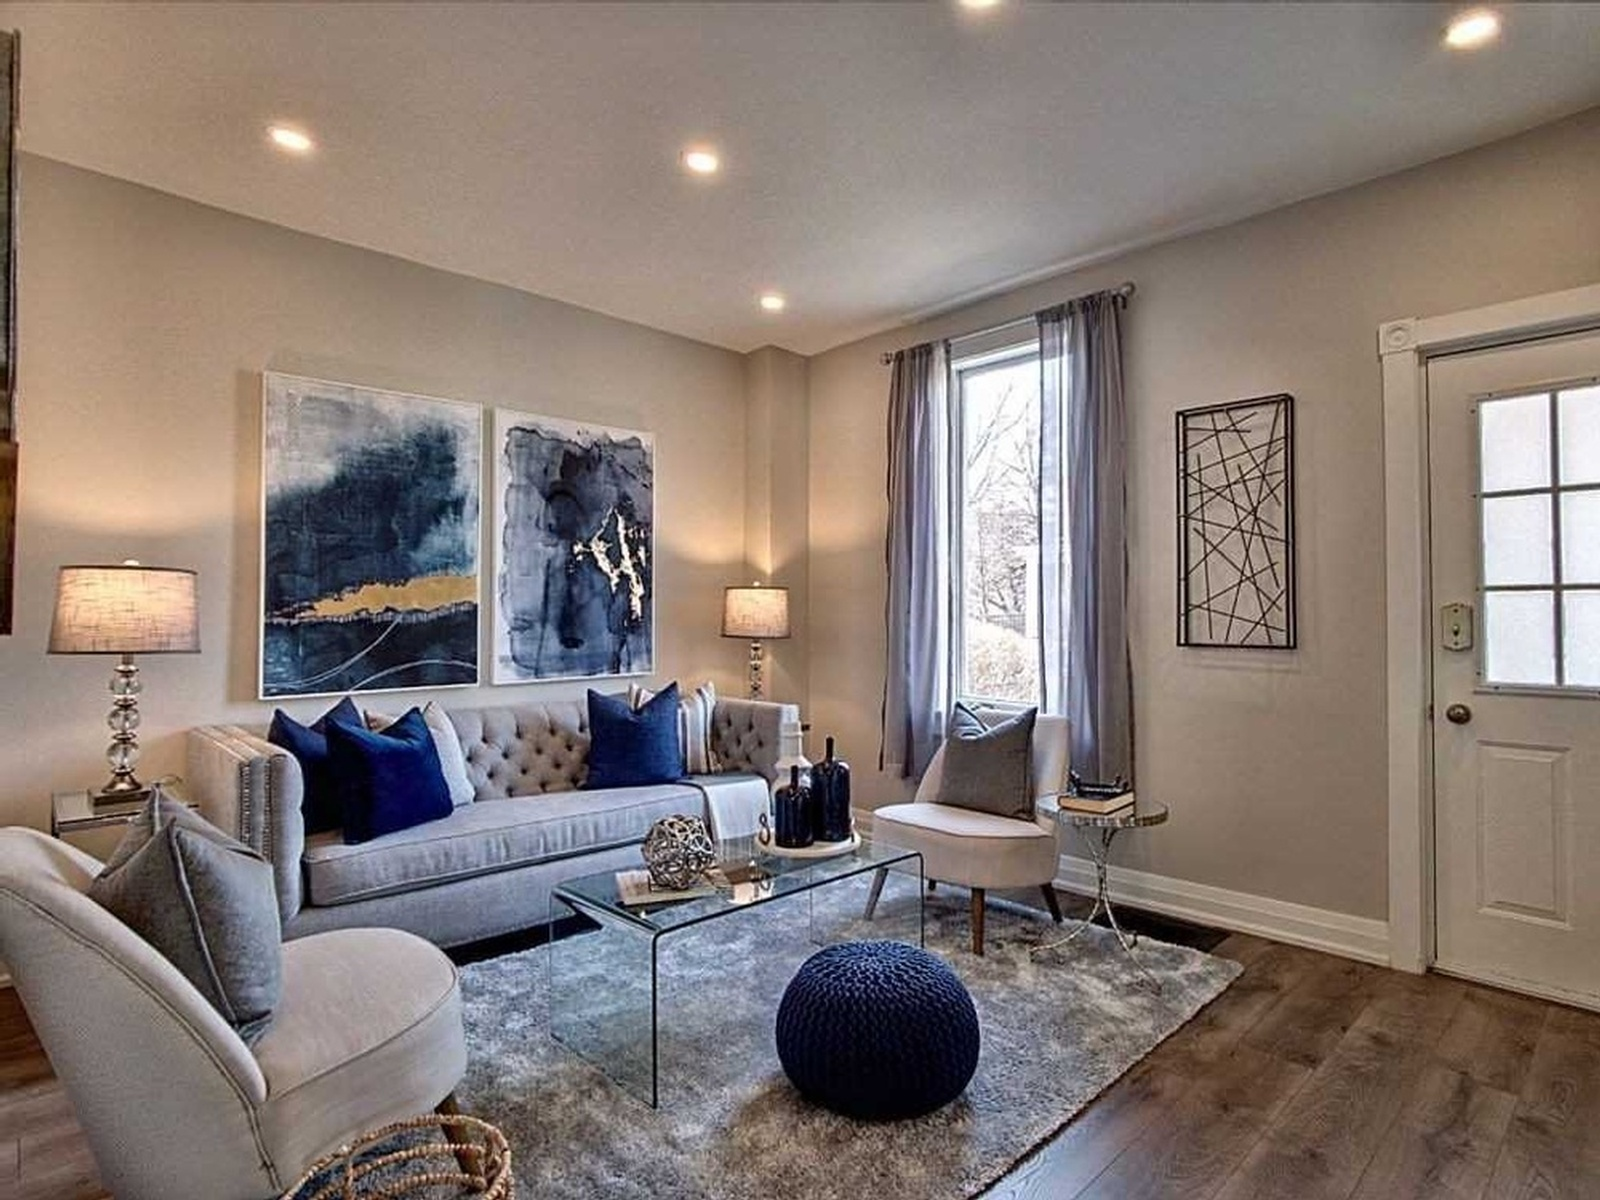 Elegant Staged Living Room - Home Staging Consultation Services Oshawa by Impressive Staging